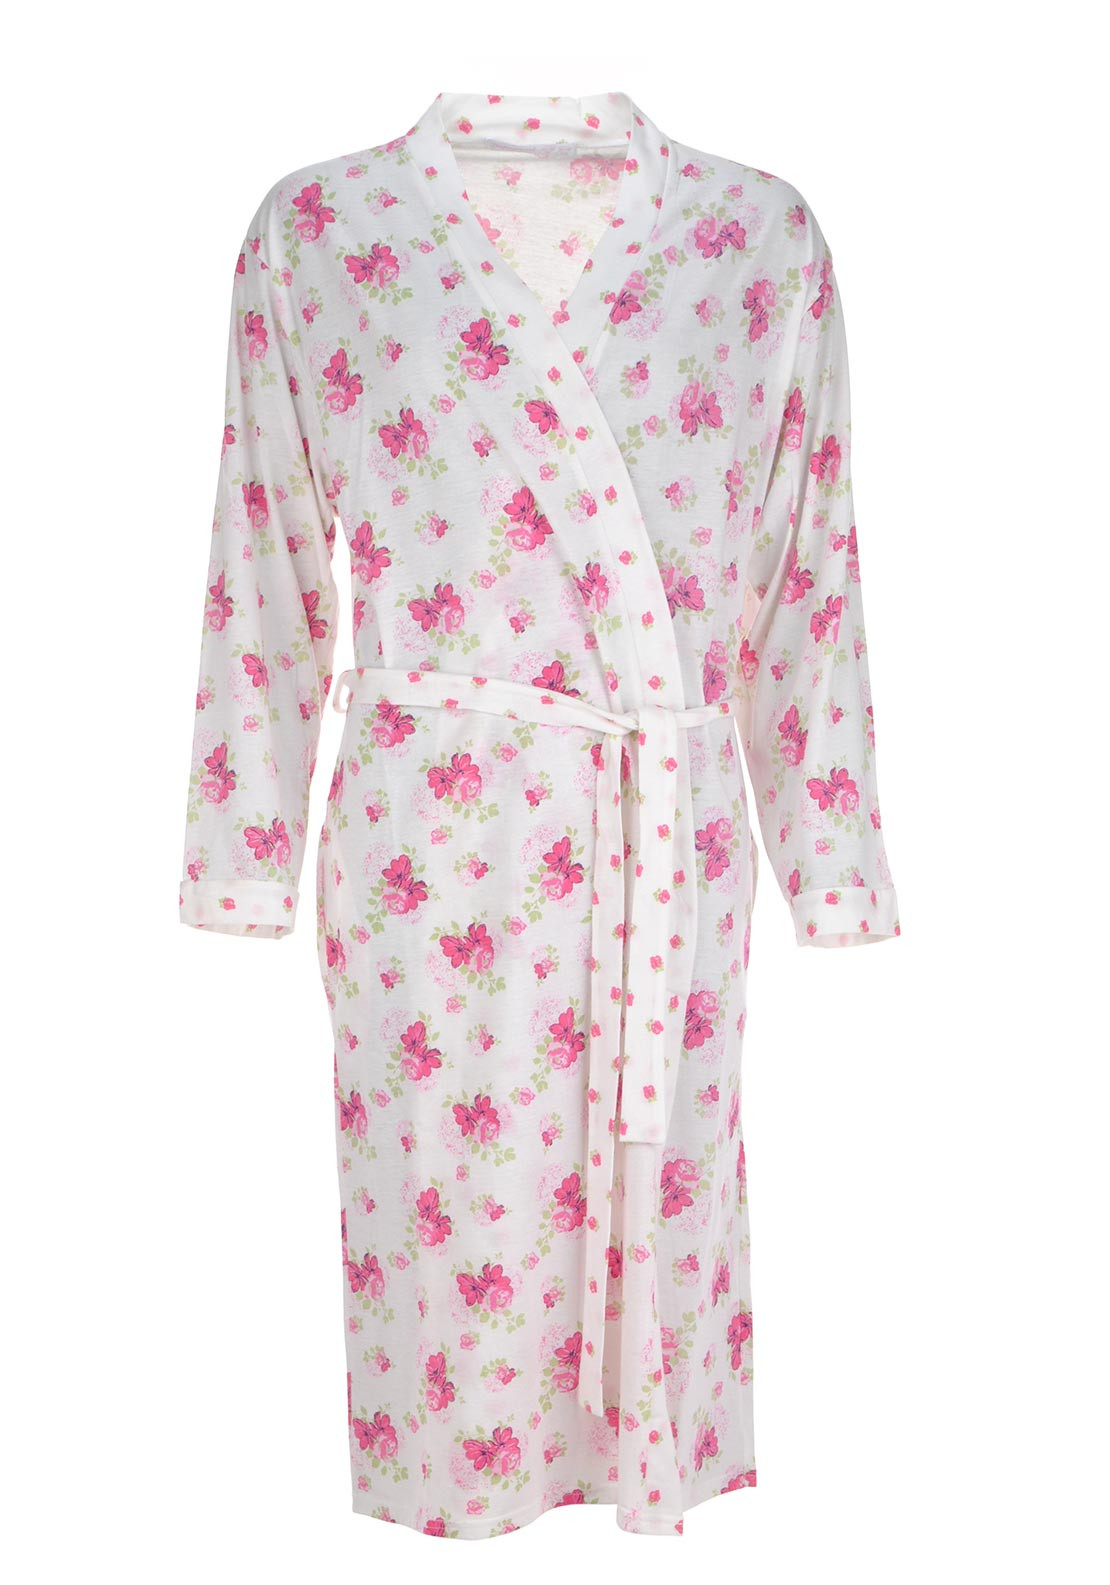 Inspirations Floral Print Robe, Pink and White